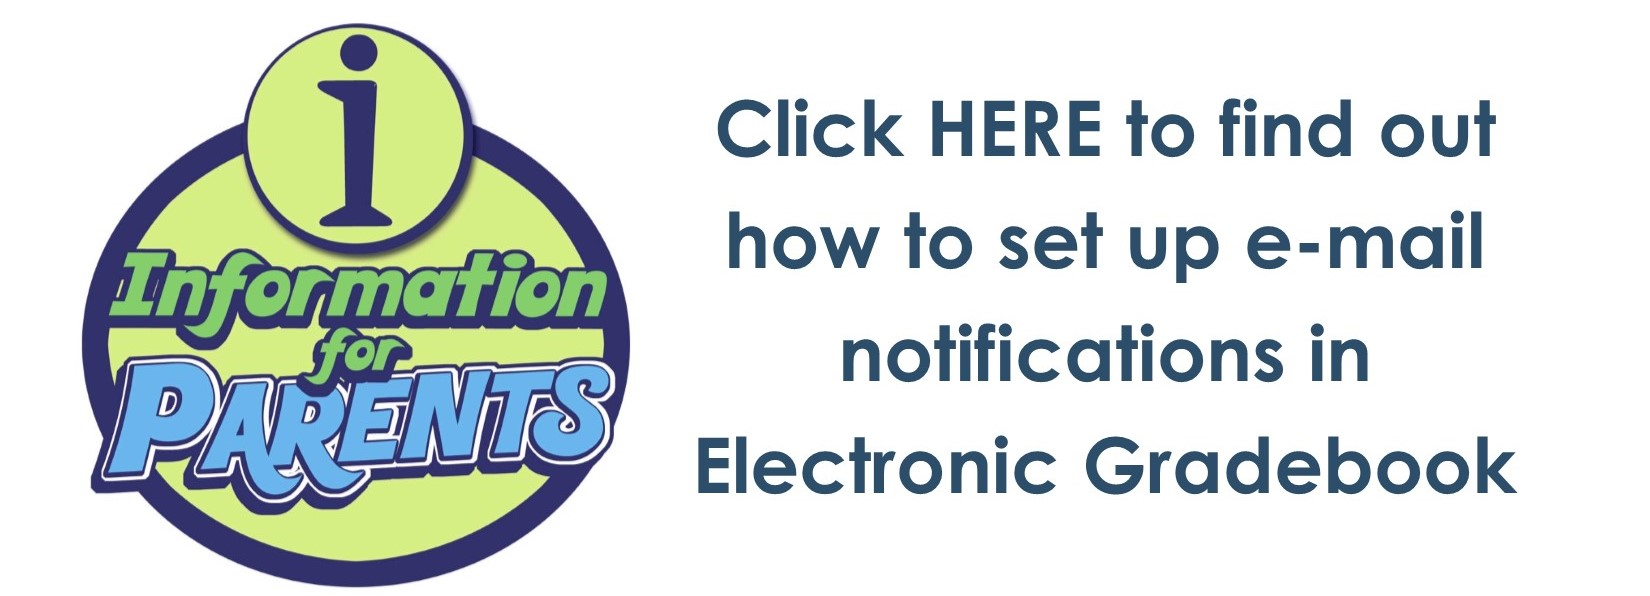 Information for Parents  Click here to find out how to set up email notifications in Electronic Gradebook